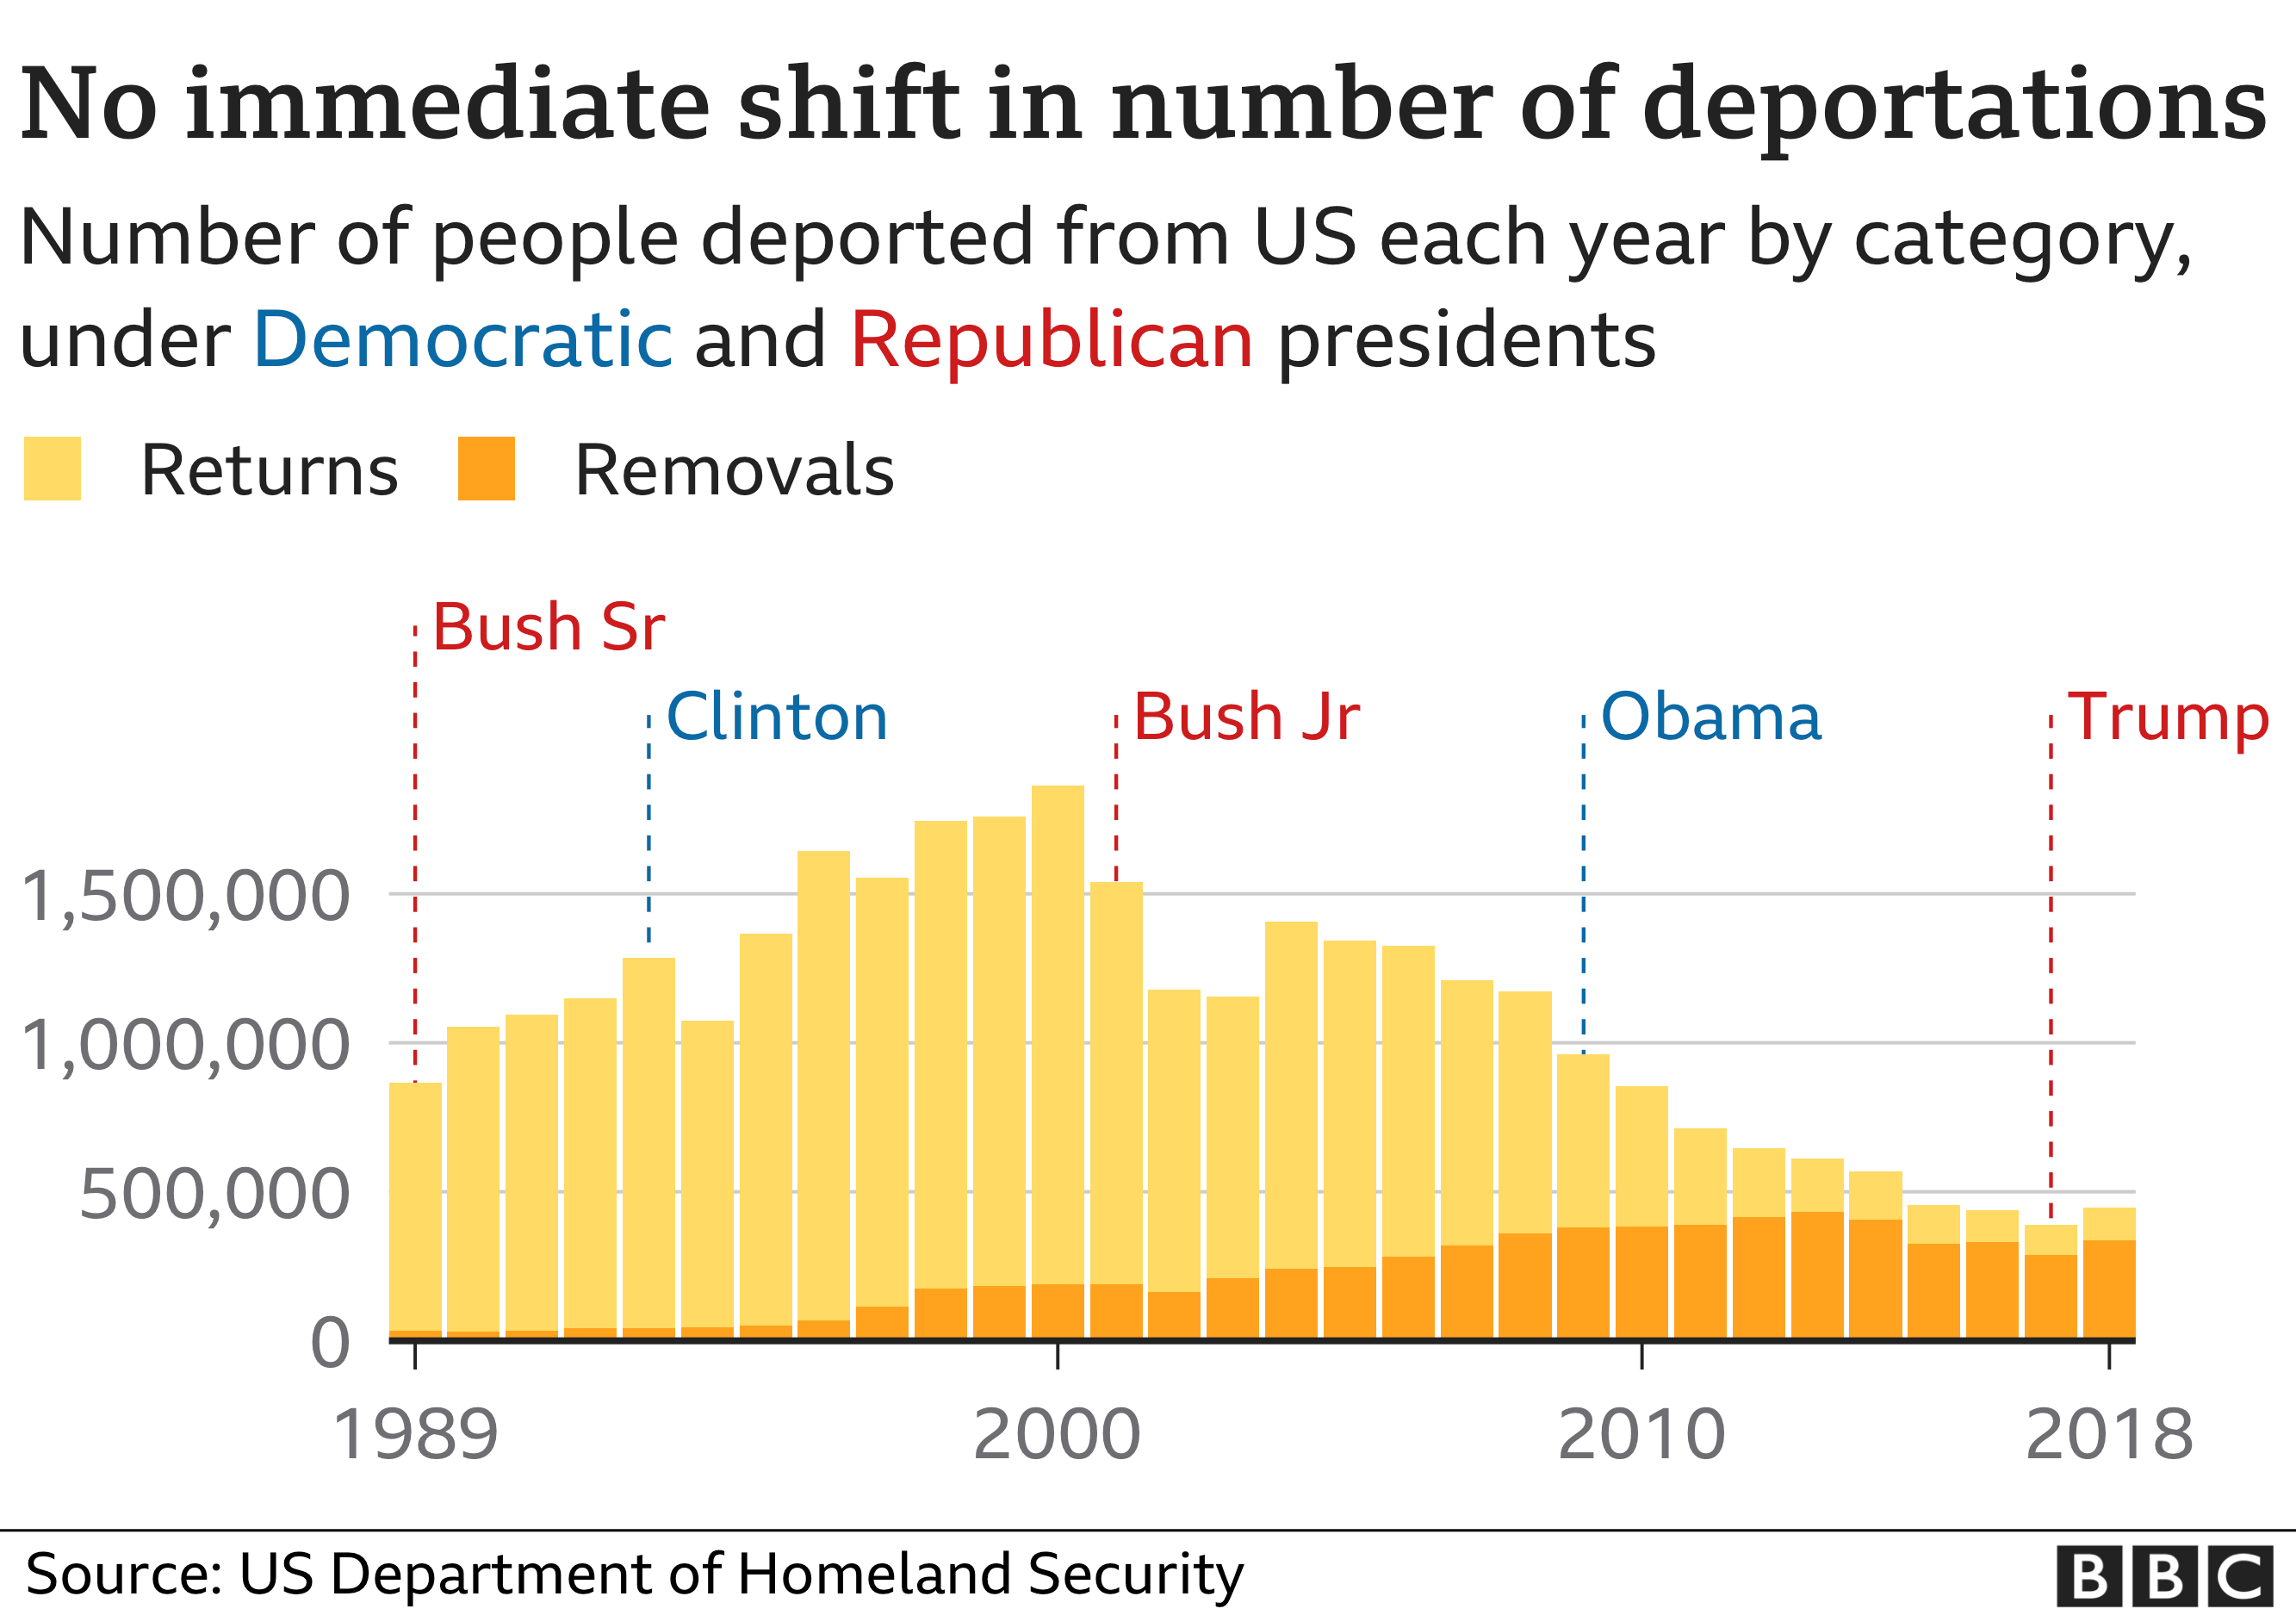 No immediate shift in number of deportations